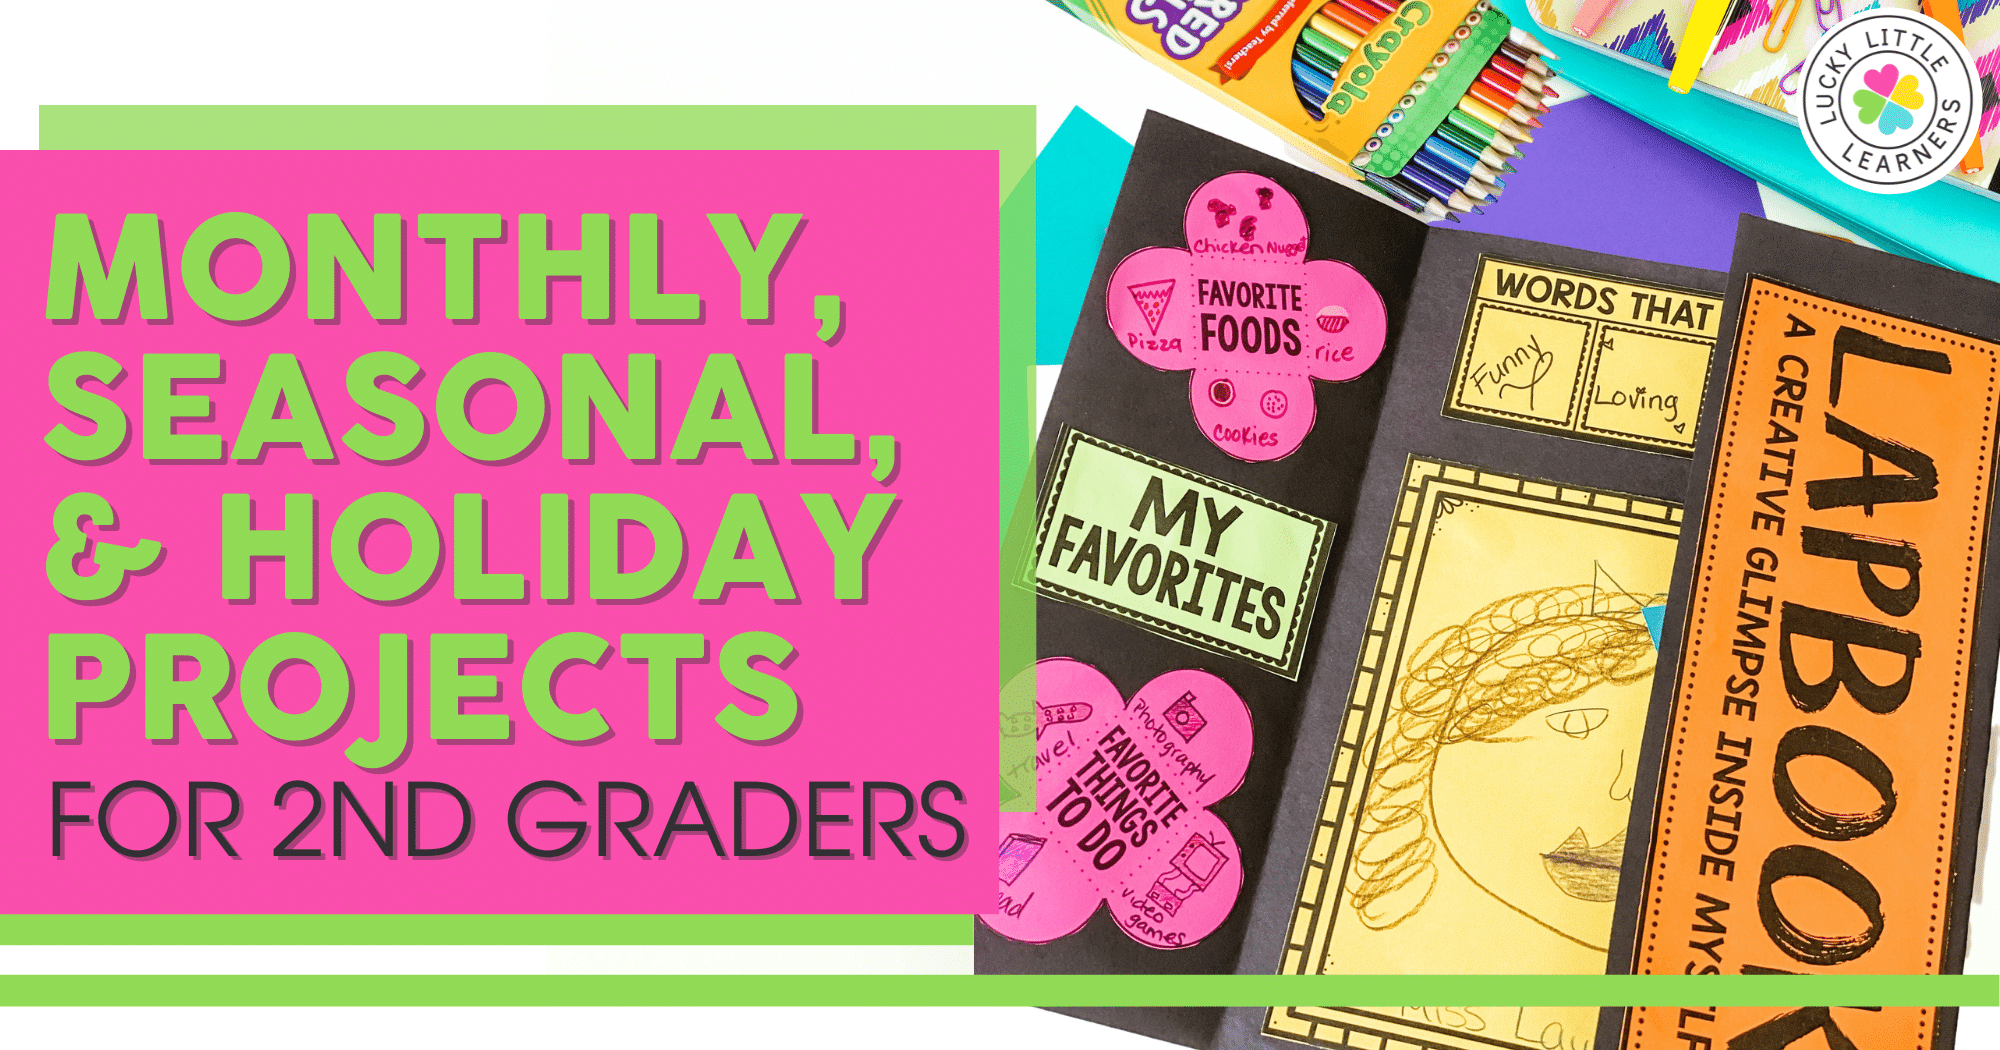 Seasonal and Holiday Projects for 2nd Graders